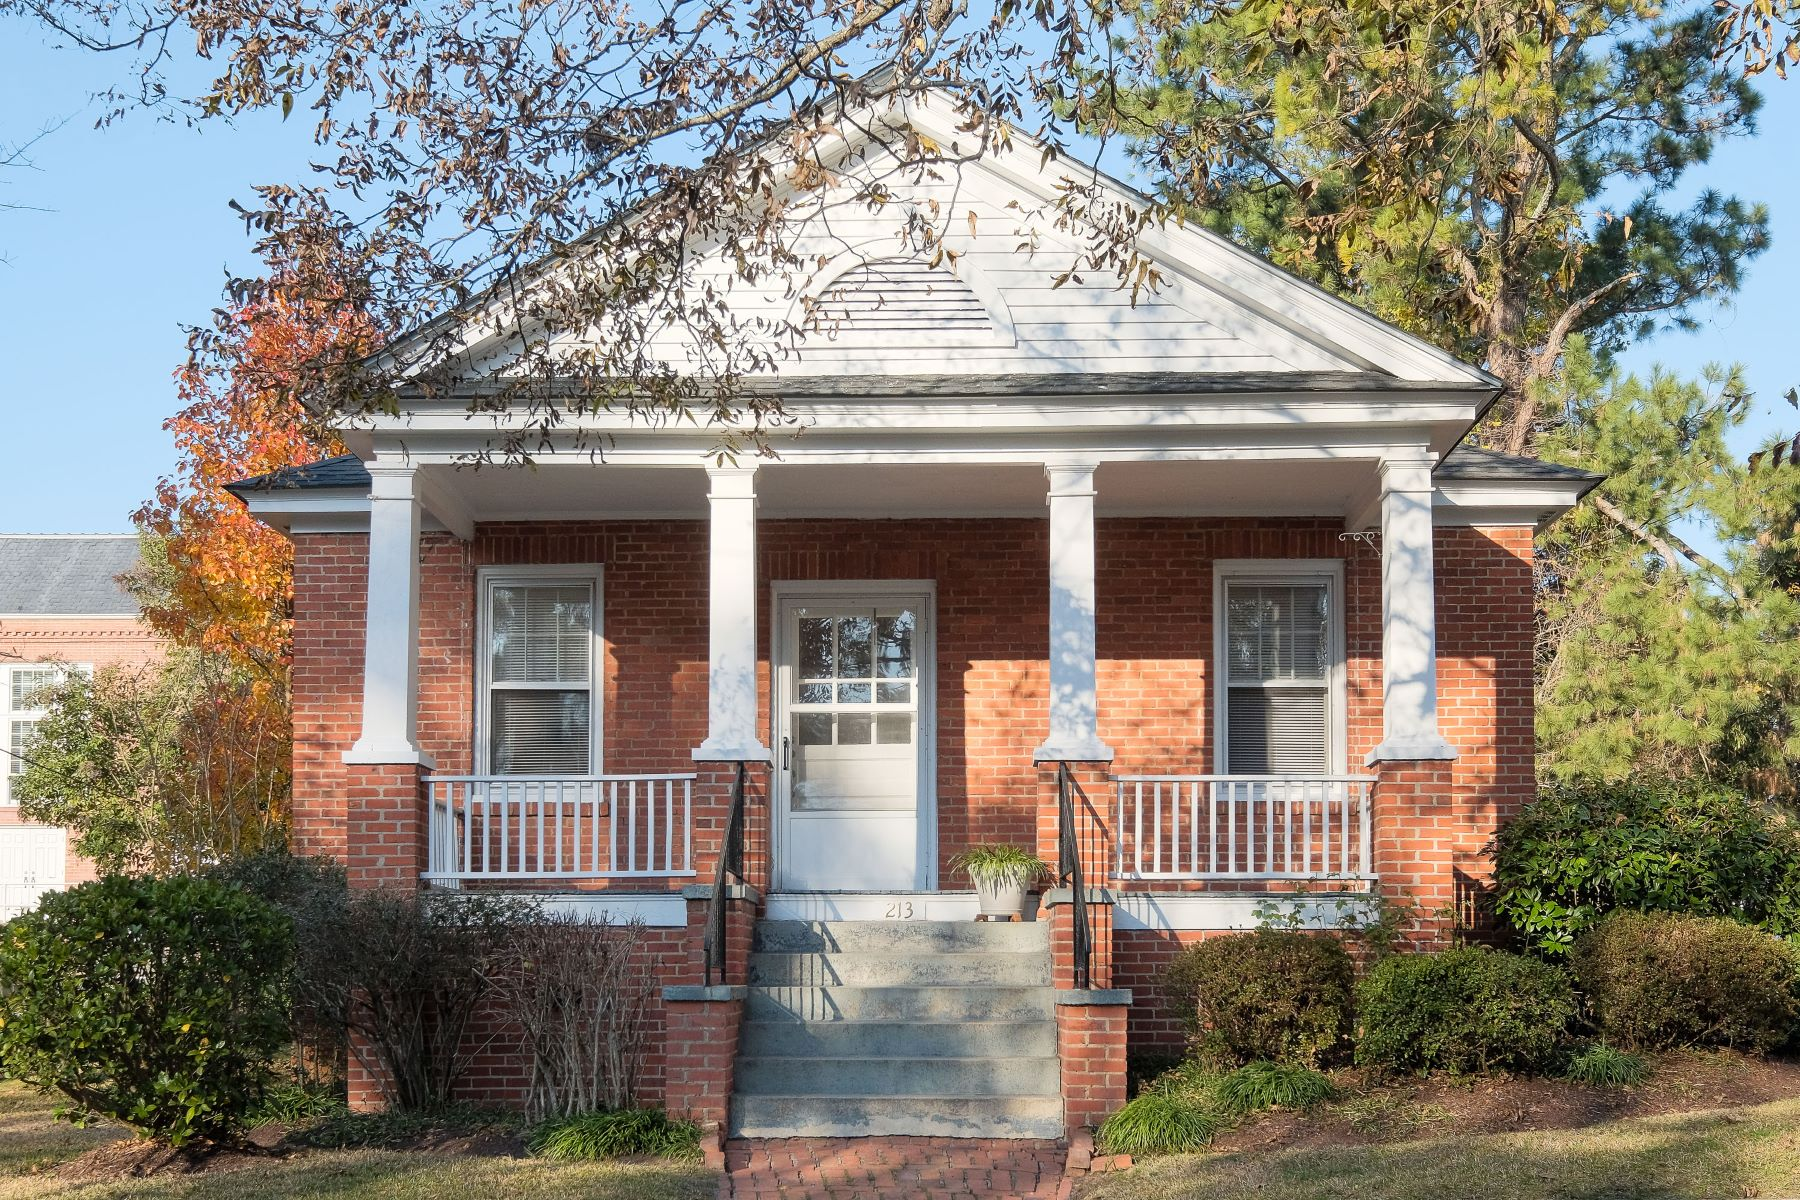 Single Family Home for Sale at DOWNTOWN BRICK BUNGALOW 213 E Queen St Edenton, North Carolina 27932 United States